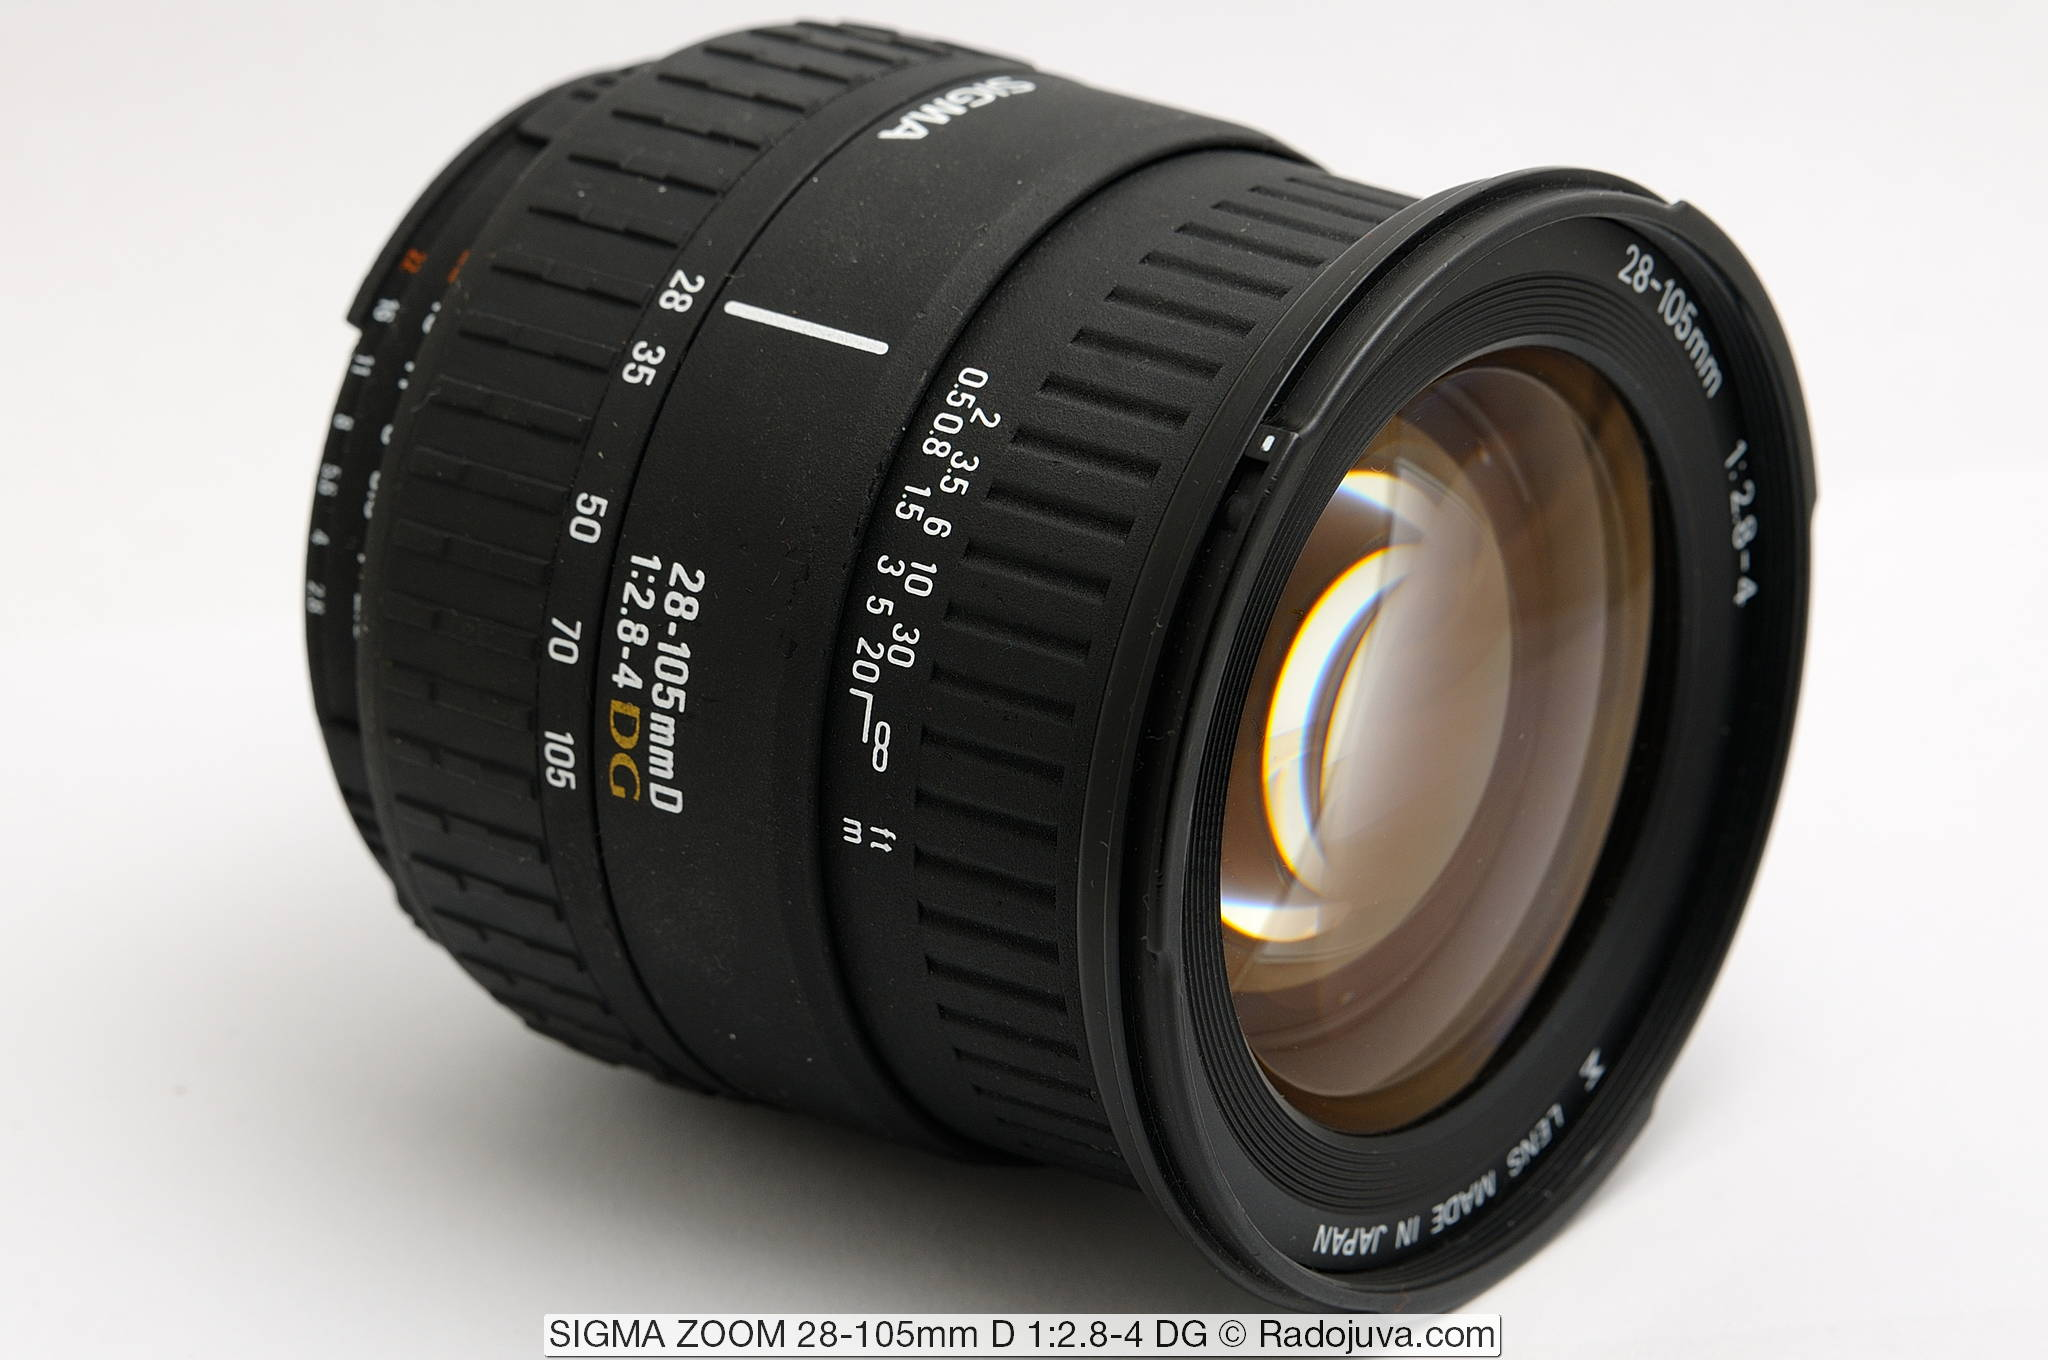 SIGMA ZOOM 28-105mm D 1:2.8-4 DG